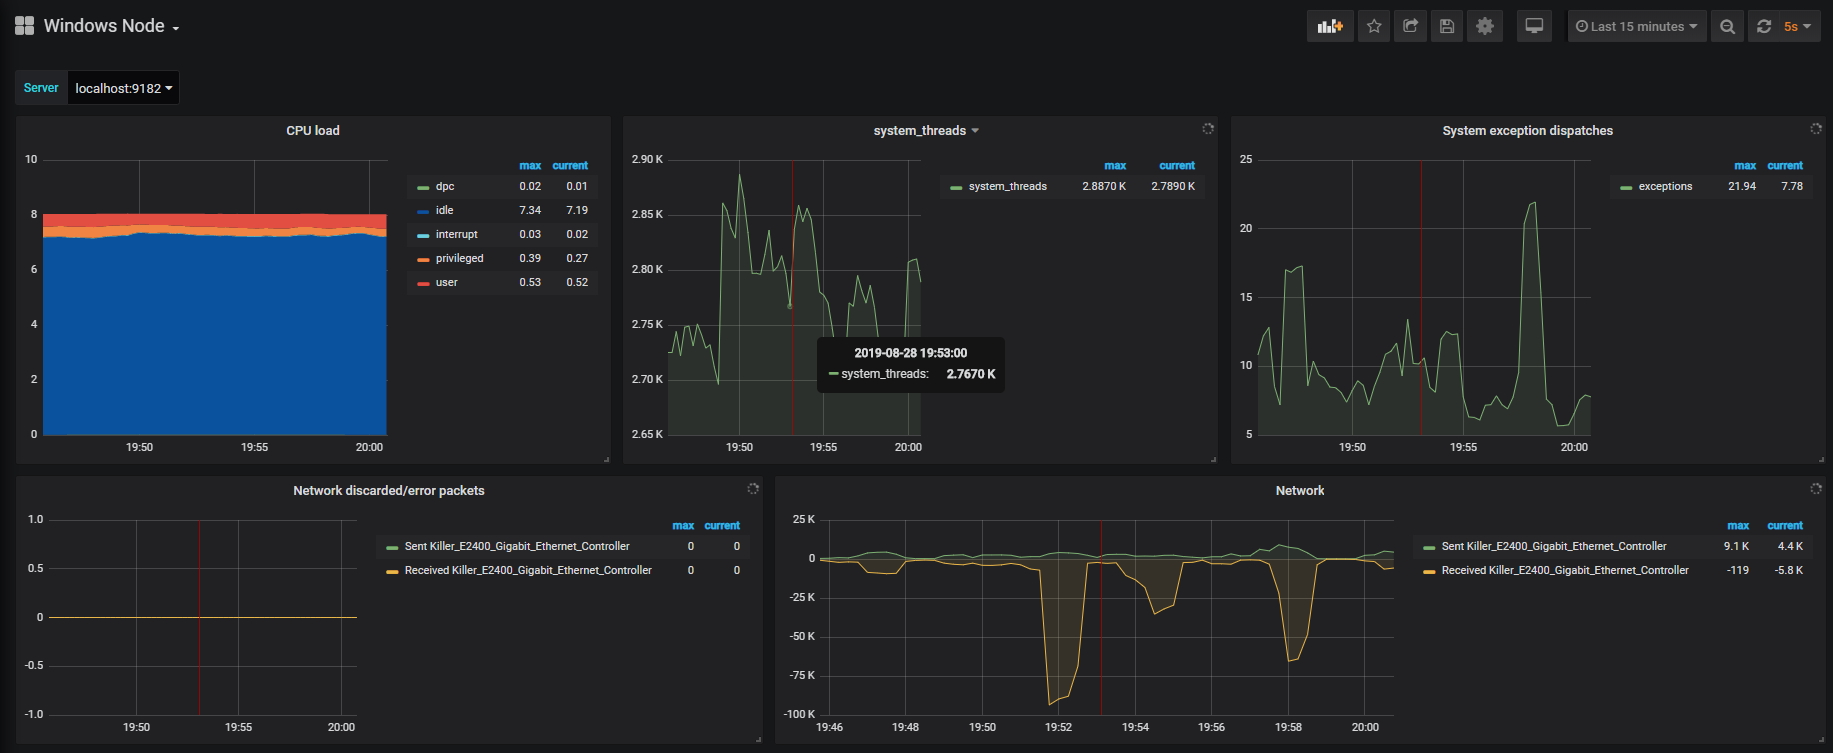 Final Windows Server monitoring dashboard